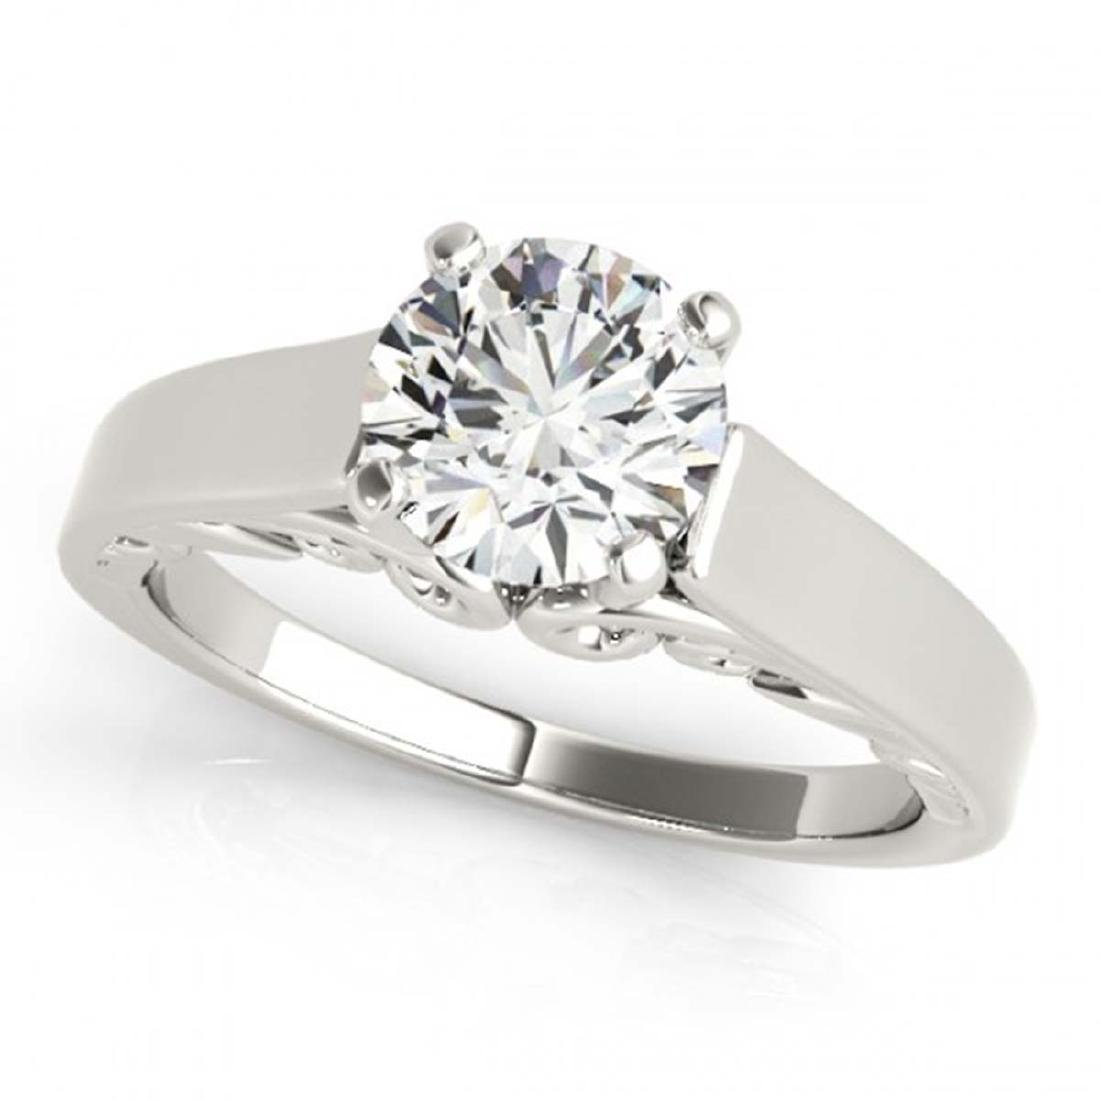 1 ctw VS/SI Diamond Ring 18K White Gold - REF-274H2M -